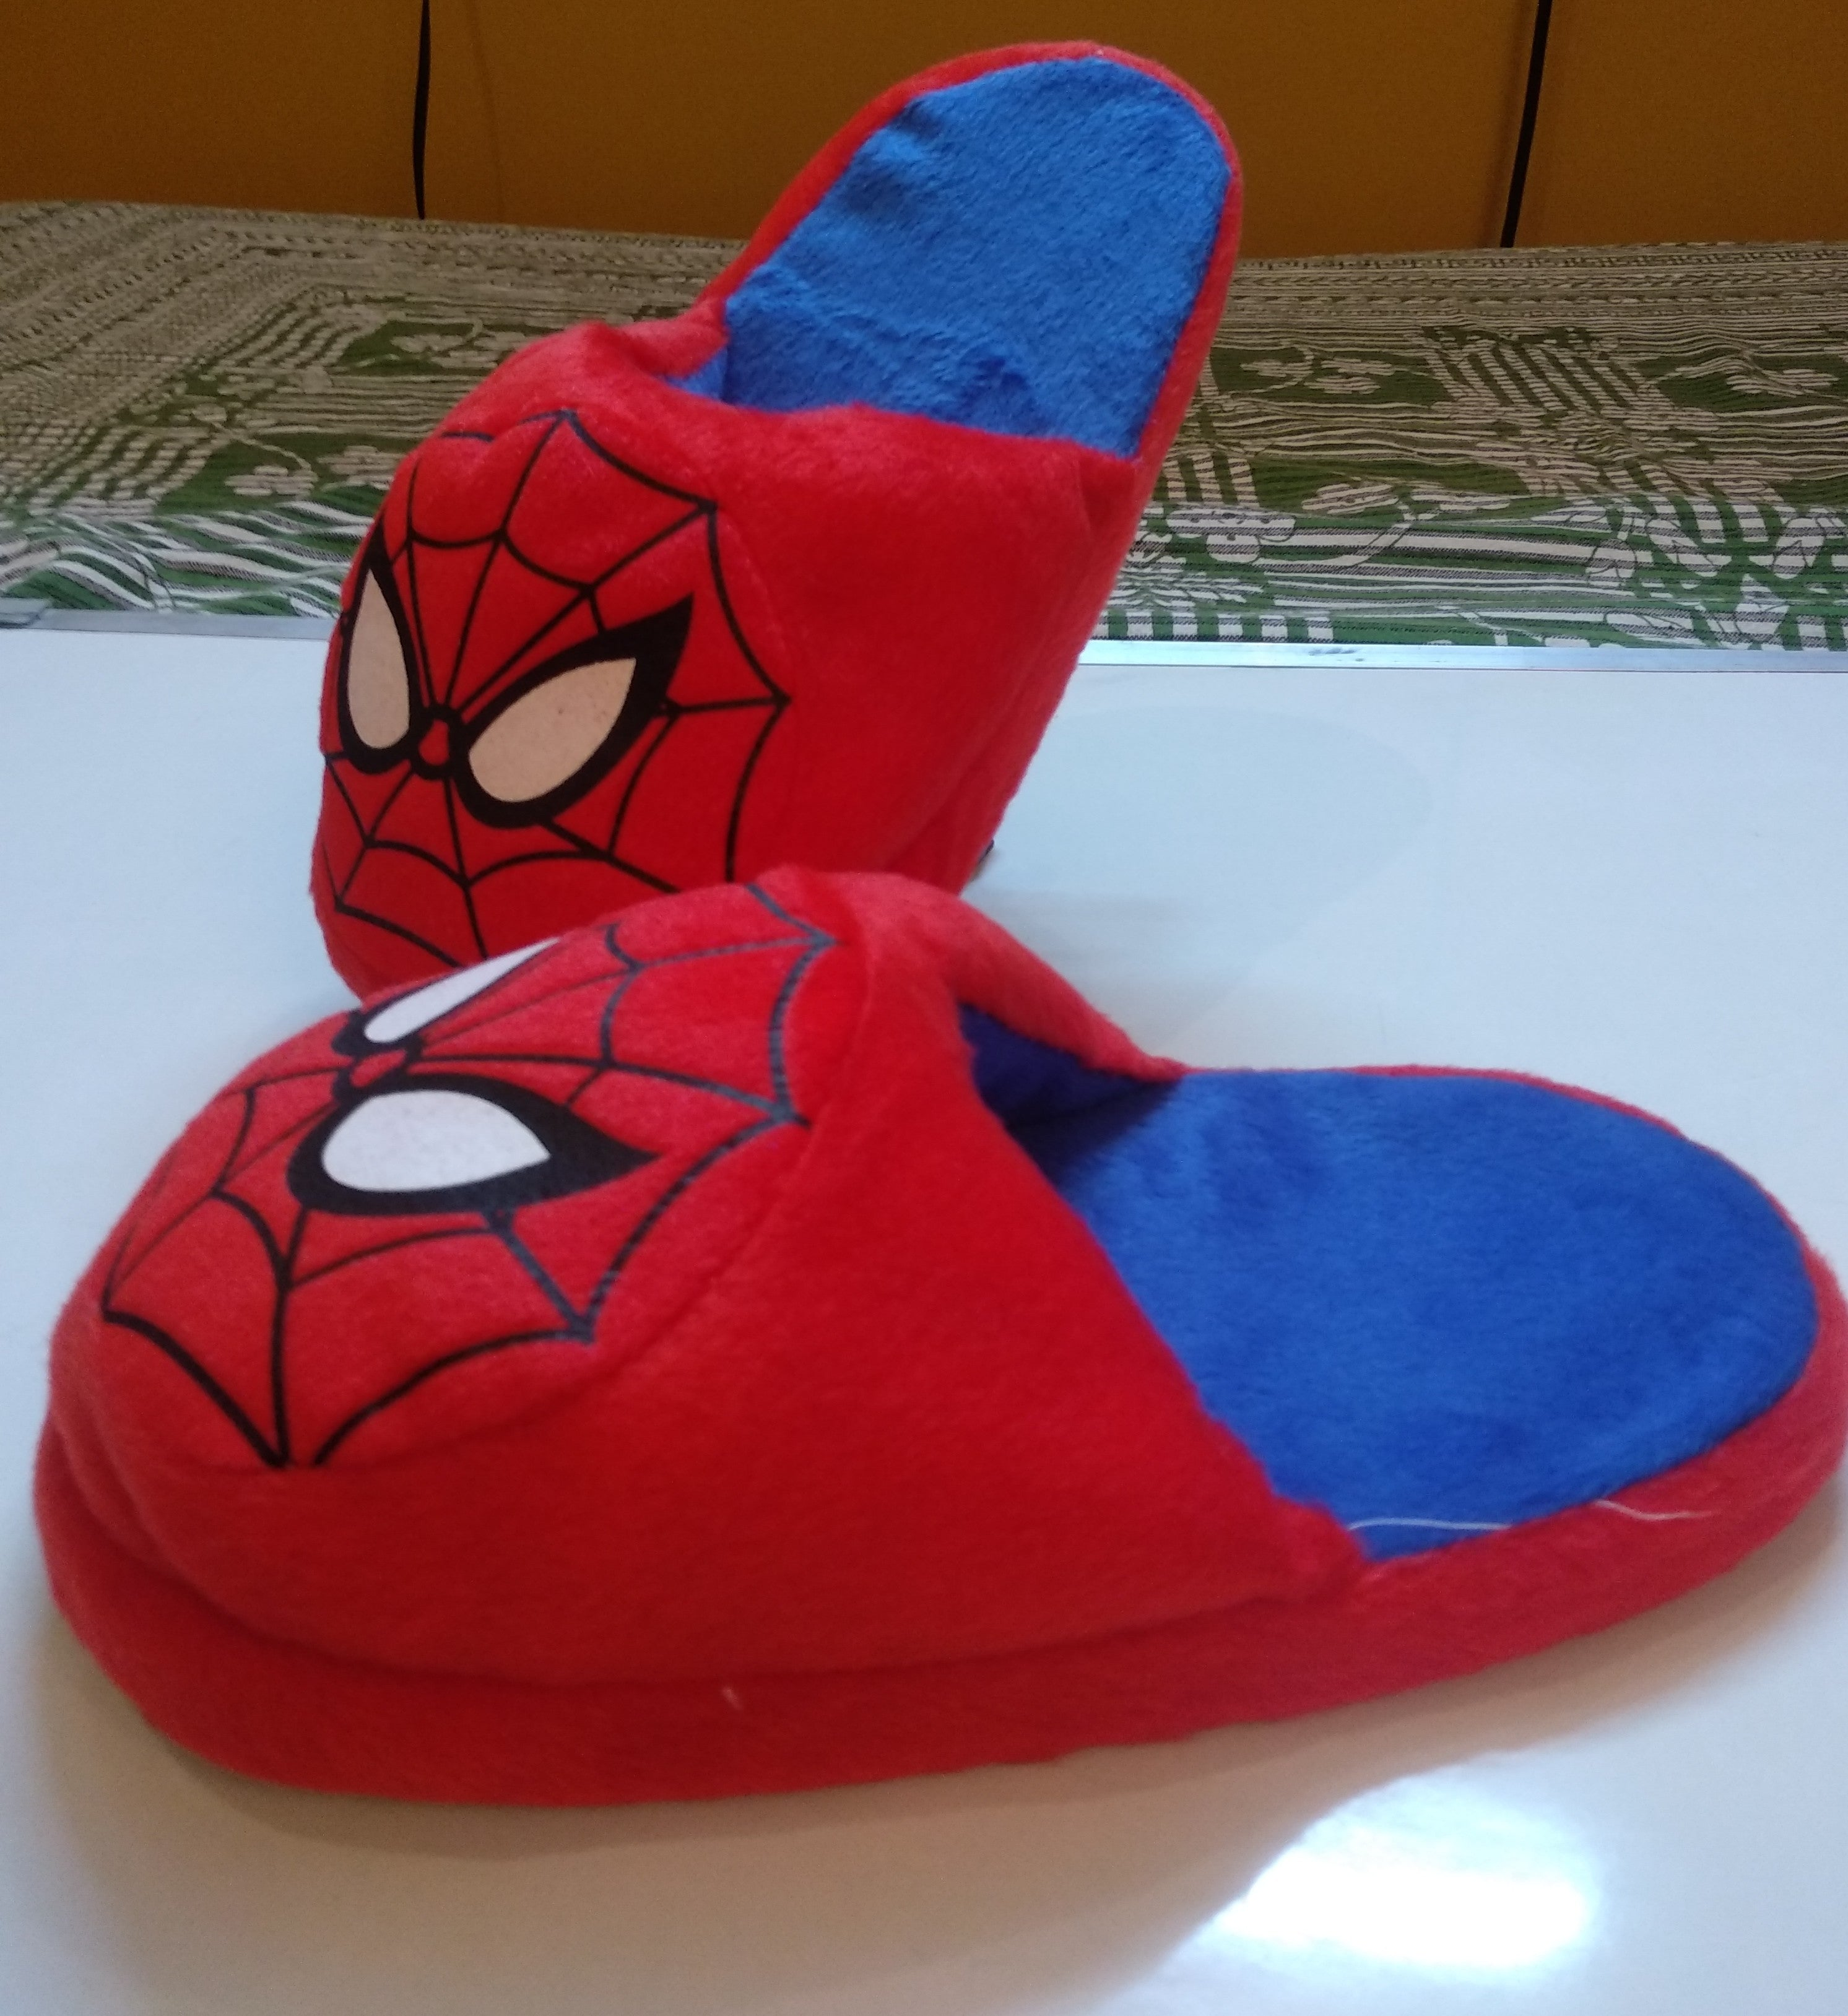 Spiderman Plush Slippers, Unique Gift - The ShopCircuit